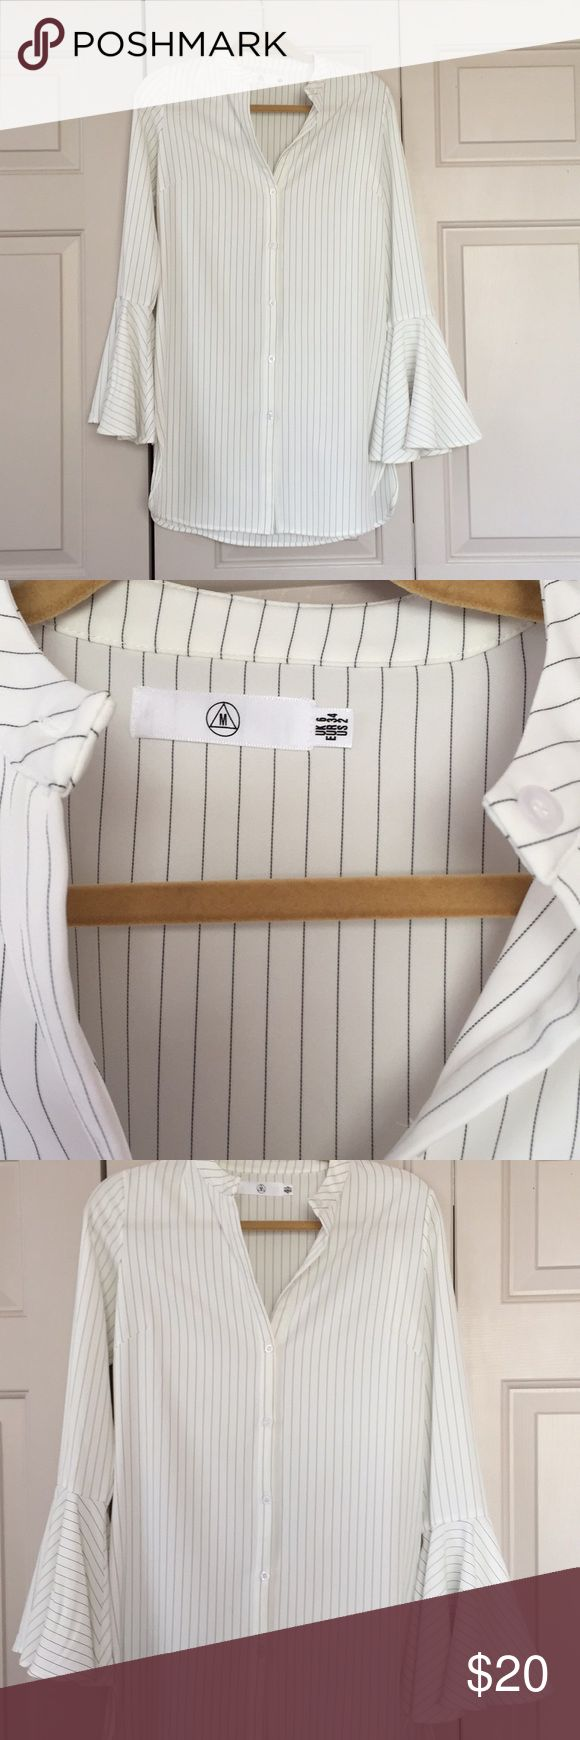 NEW Missguided button down bell-sleeve dress Brand new without tags! Never been worn!! Missguided white button down pinstripe dress with bell-sleeves. The color is white with black pinstripes. Comes from a smoke free and pet free home. Missguided Dresses Mini